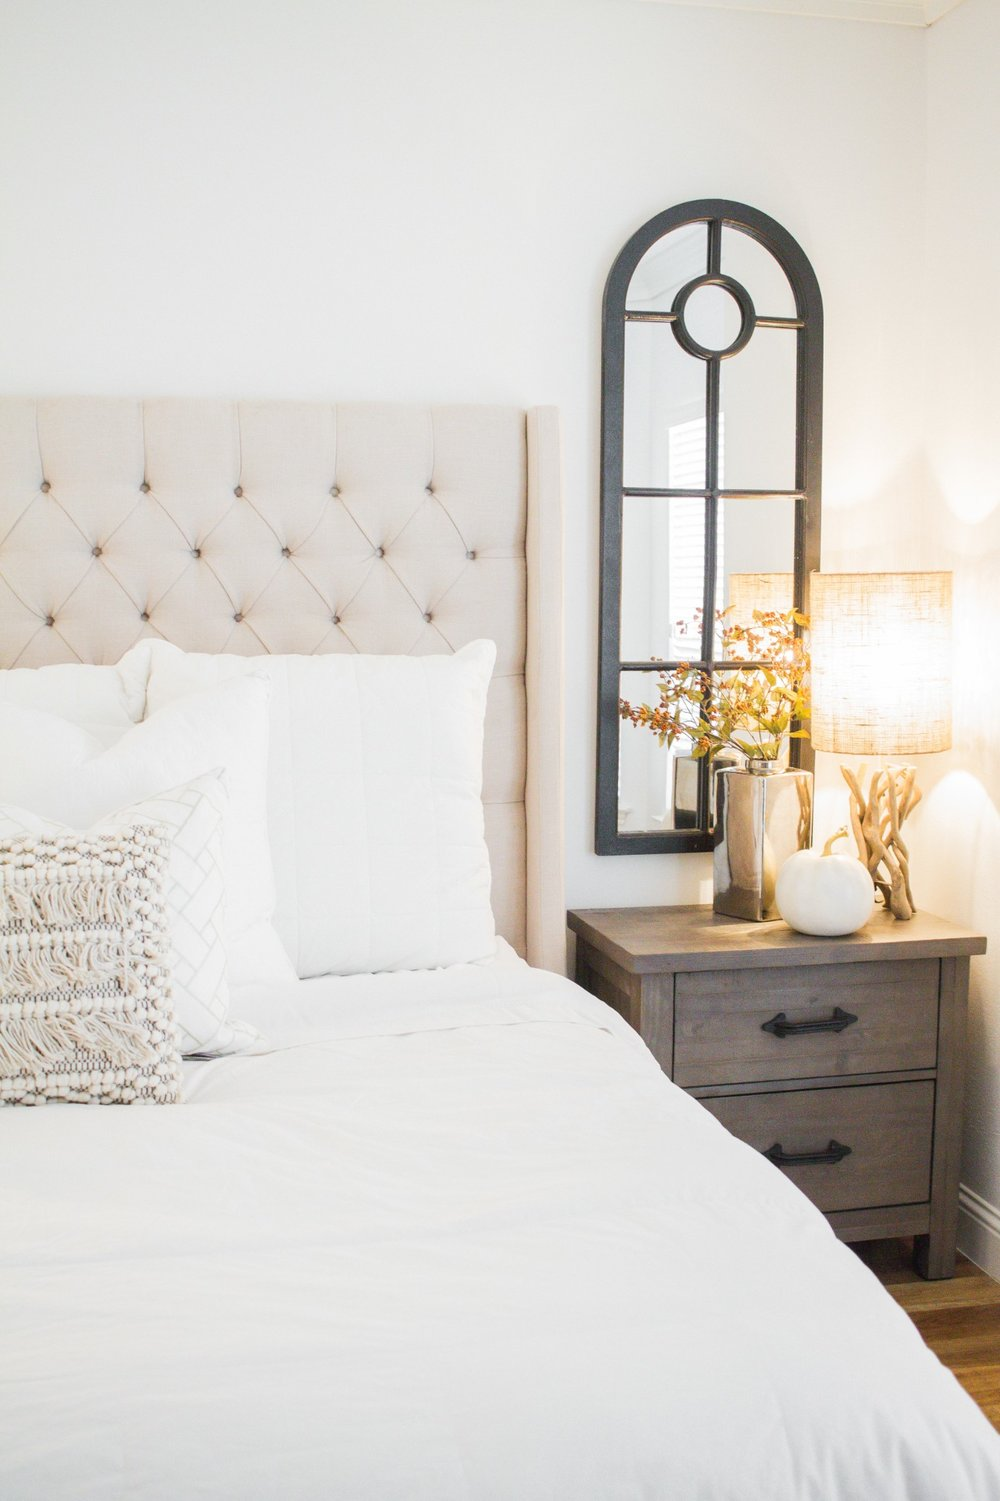 Dallas Artist Rustic Meets Modern Home Tour - Master Bedroom